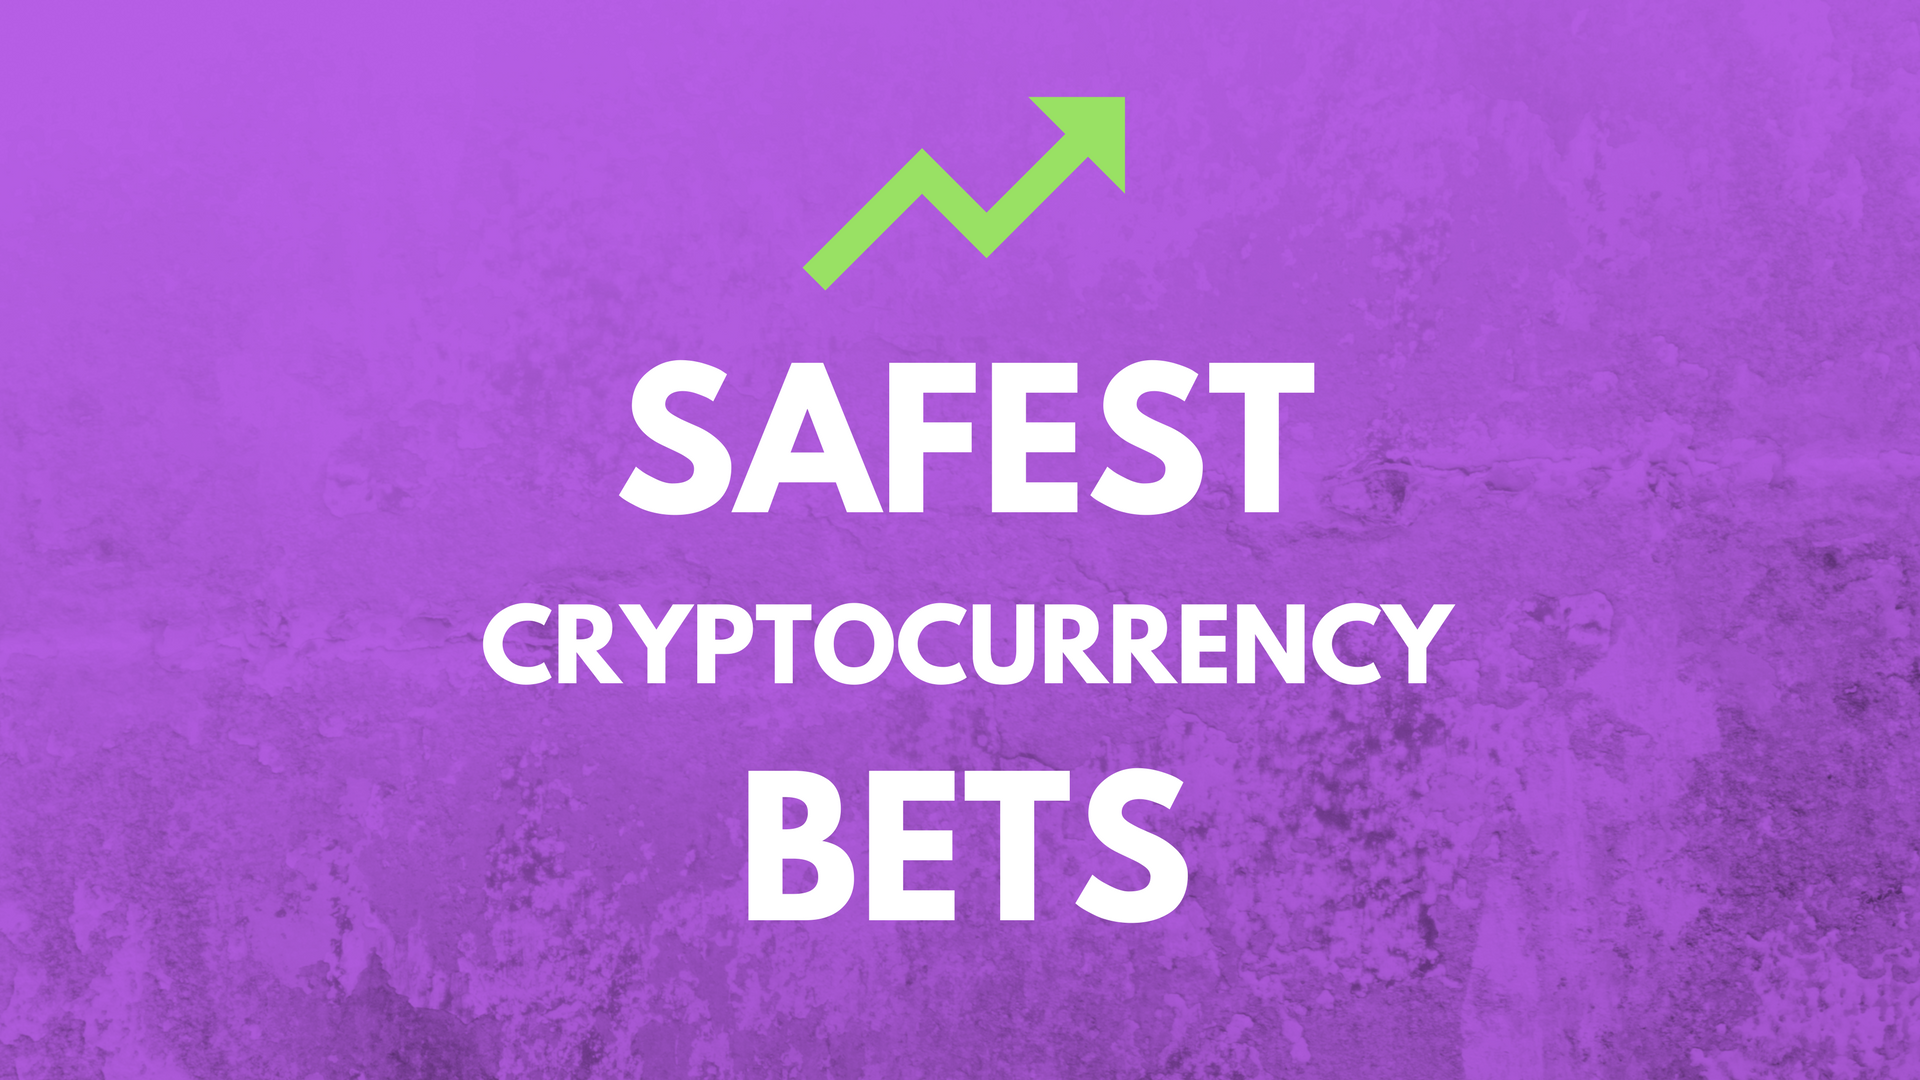 5 safest cryptocurrency bets for 2018